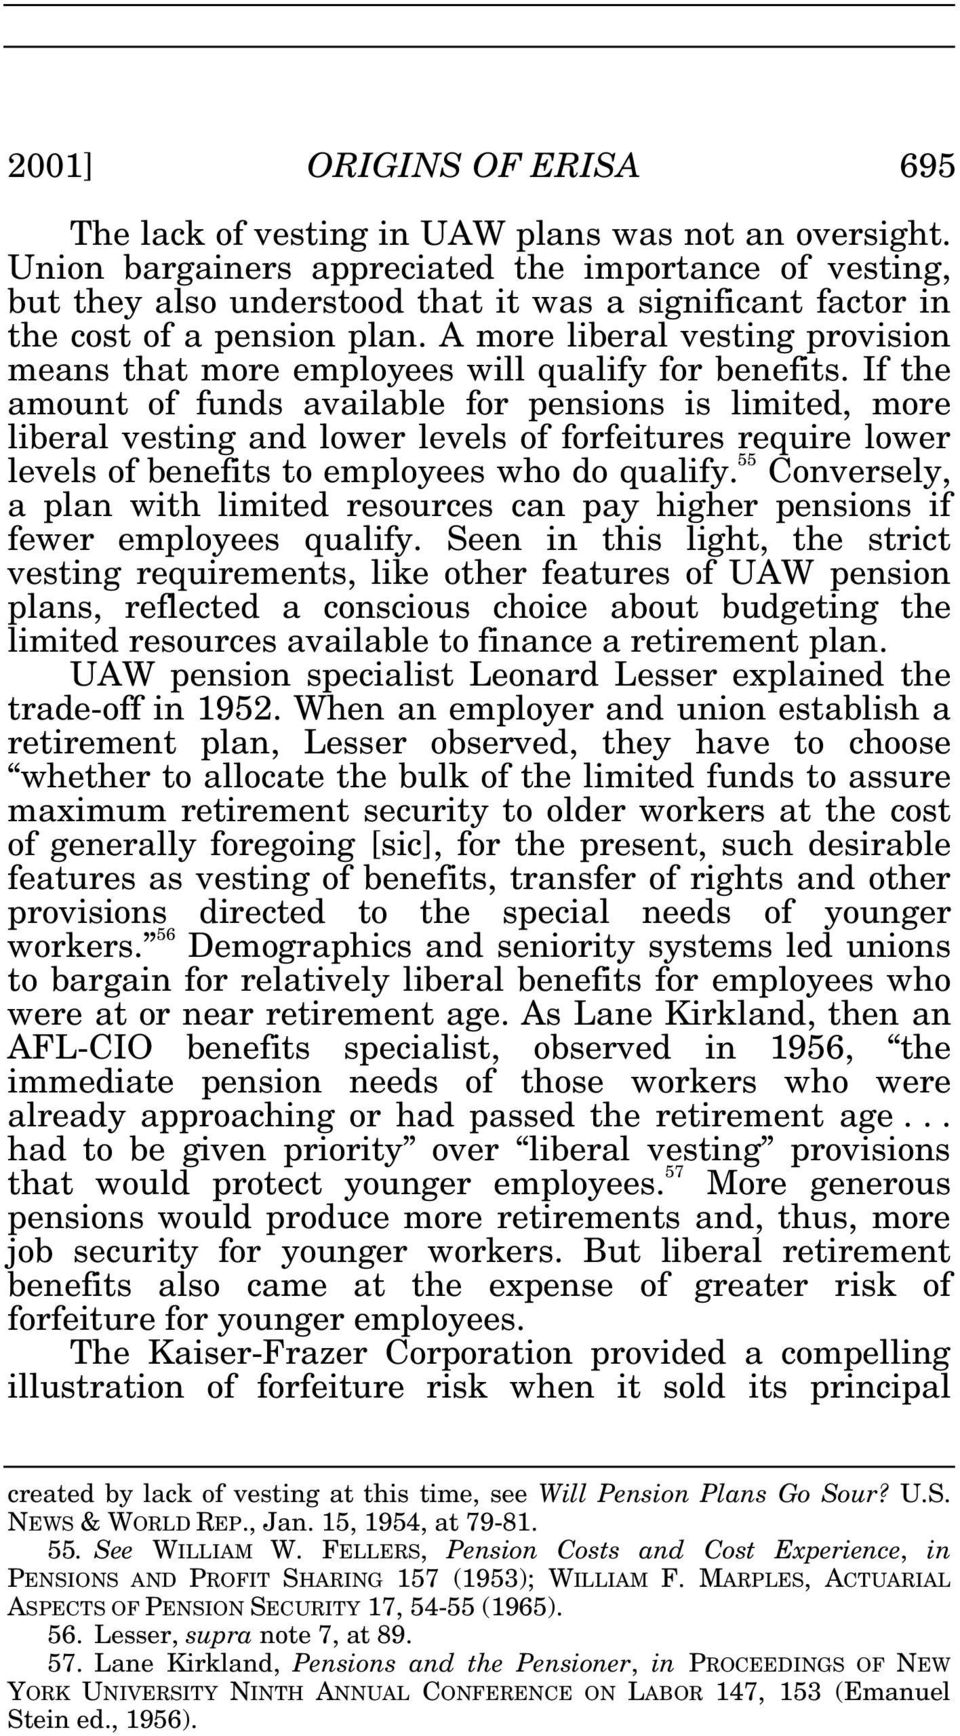 A more liberal vesting provision means that more employees will qualify for benefits.